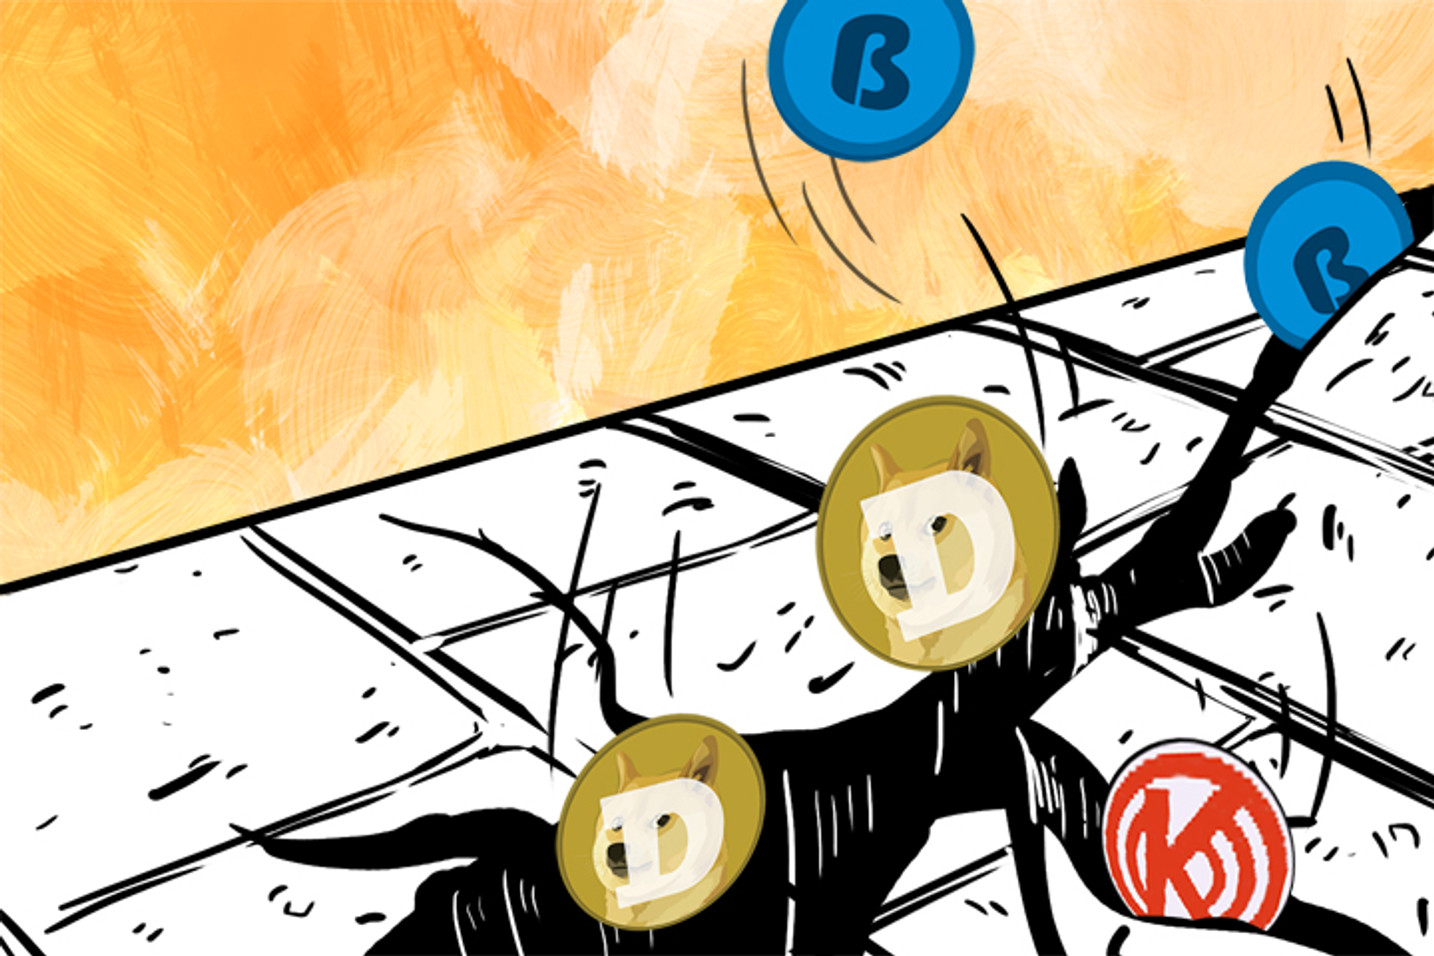 The Alt Cracks: Altcoin Stories That Fell Through The Cracks 10/23